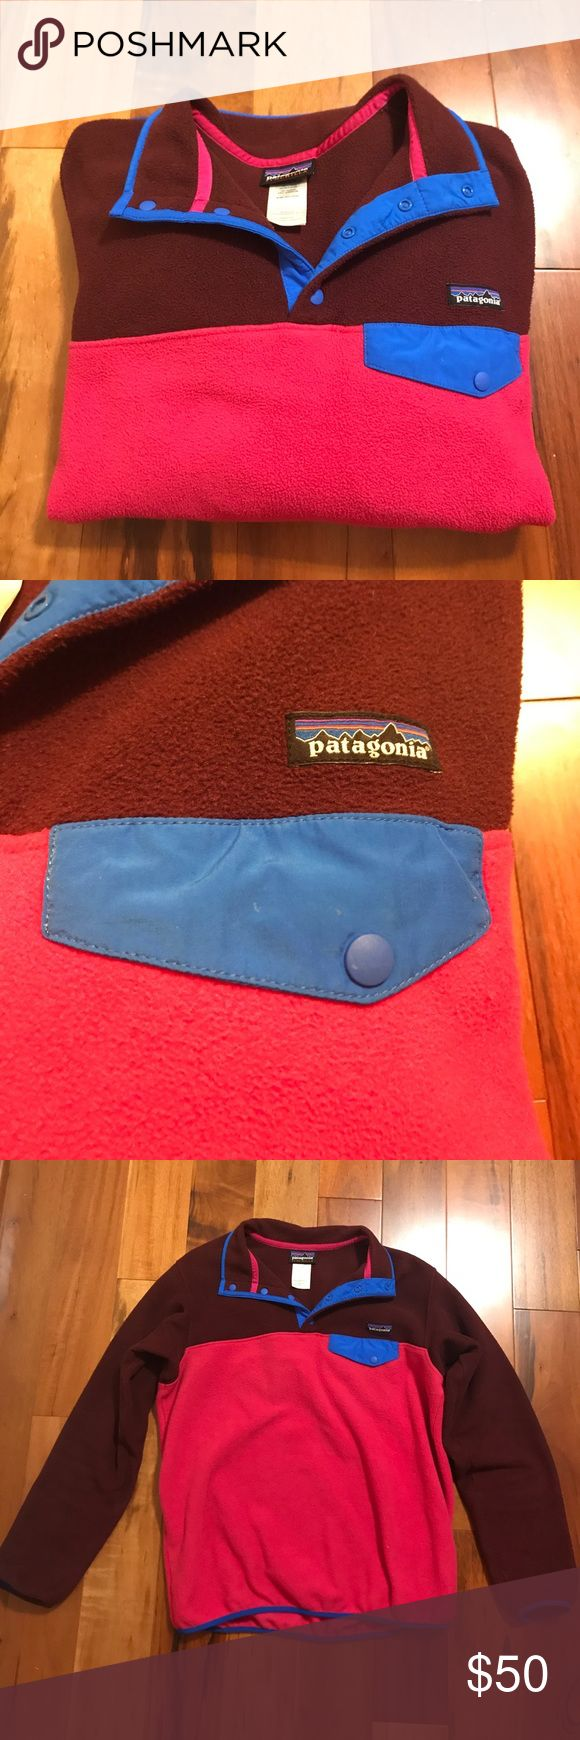 Pink and burgundy Large Patagonia Pullover Super soft and cozy Patagonia pullover. Very light wear. Patagonia Jackets & Coats